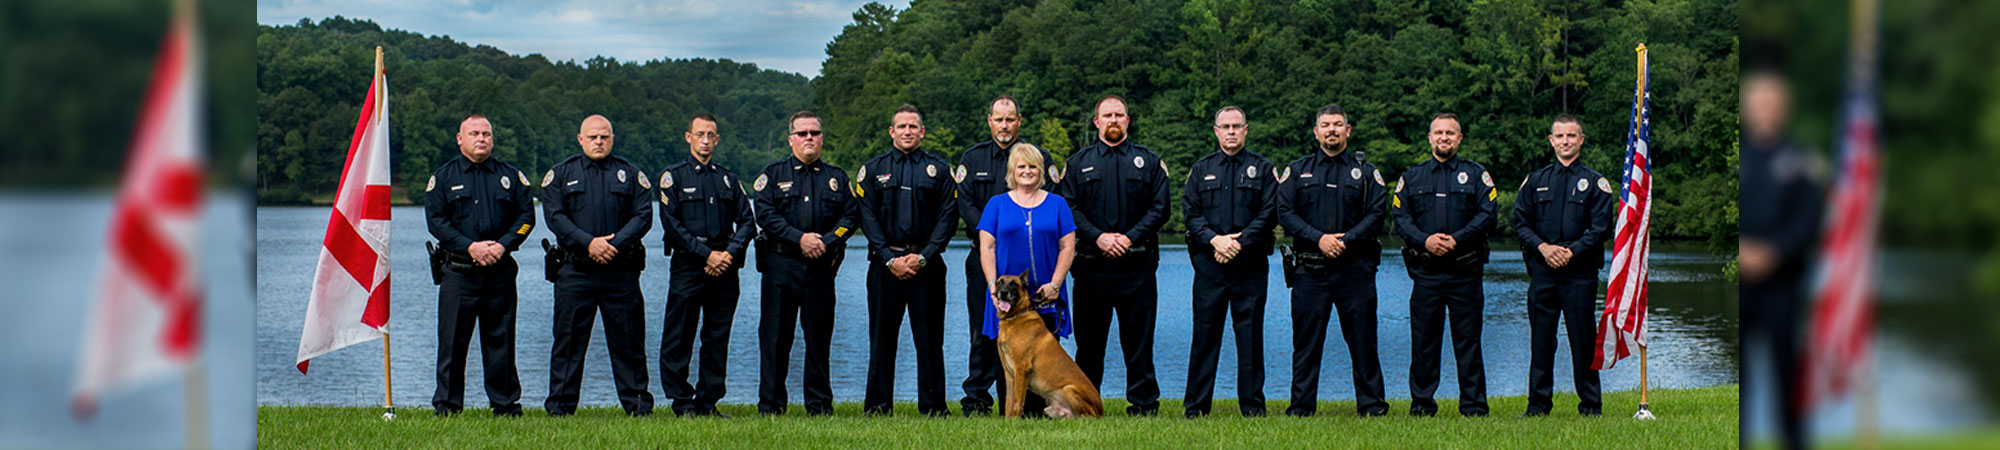 police officers and police dog lined up in front of lake